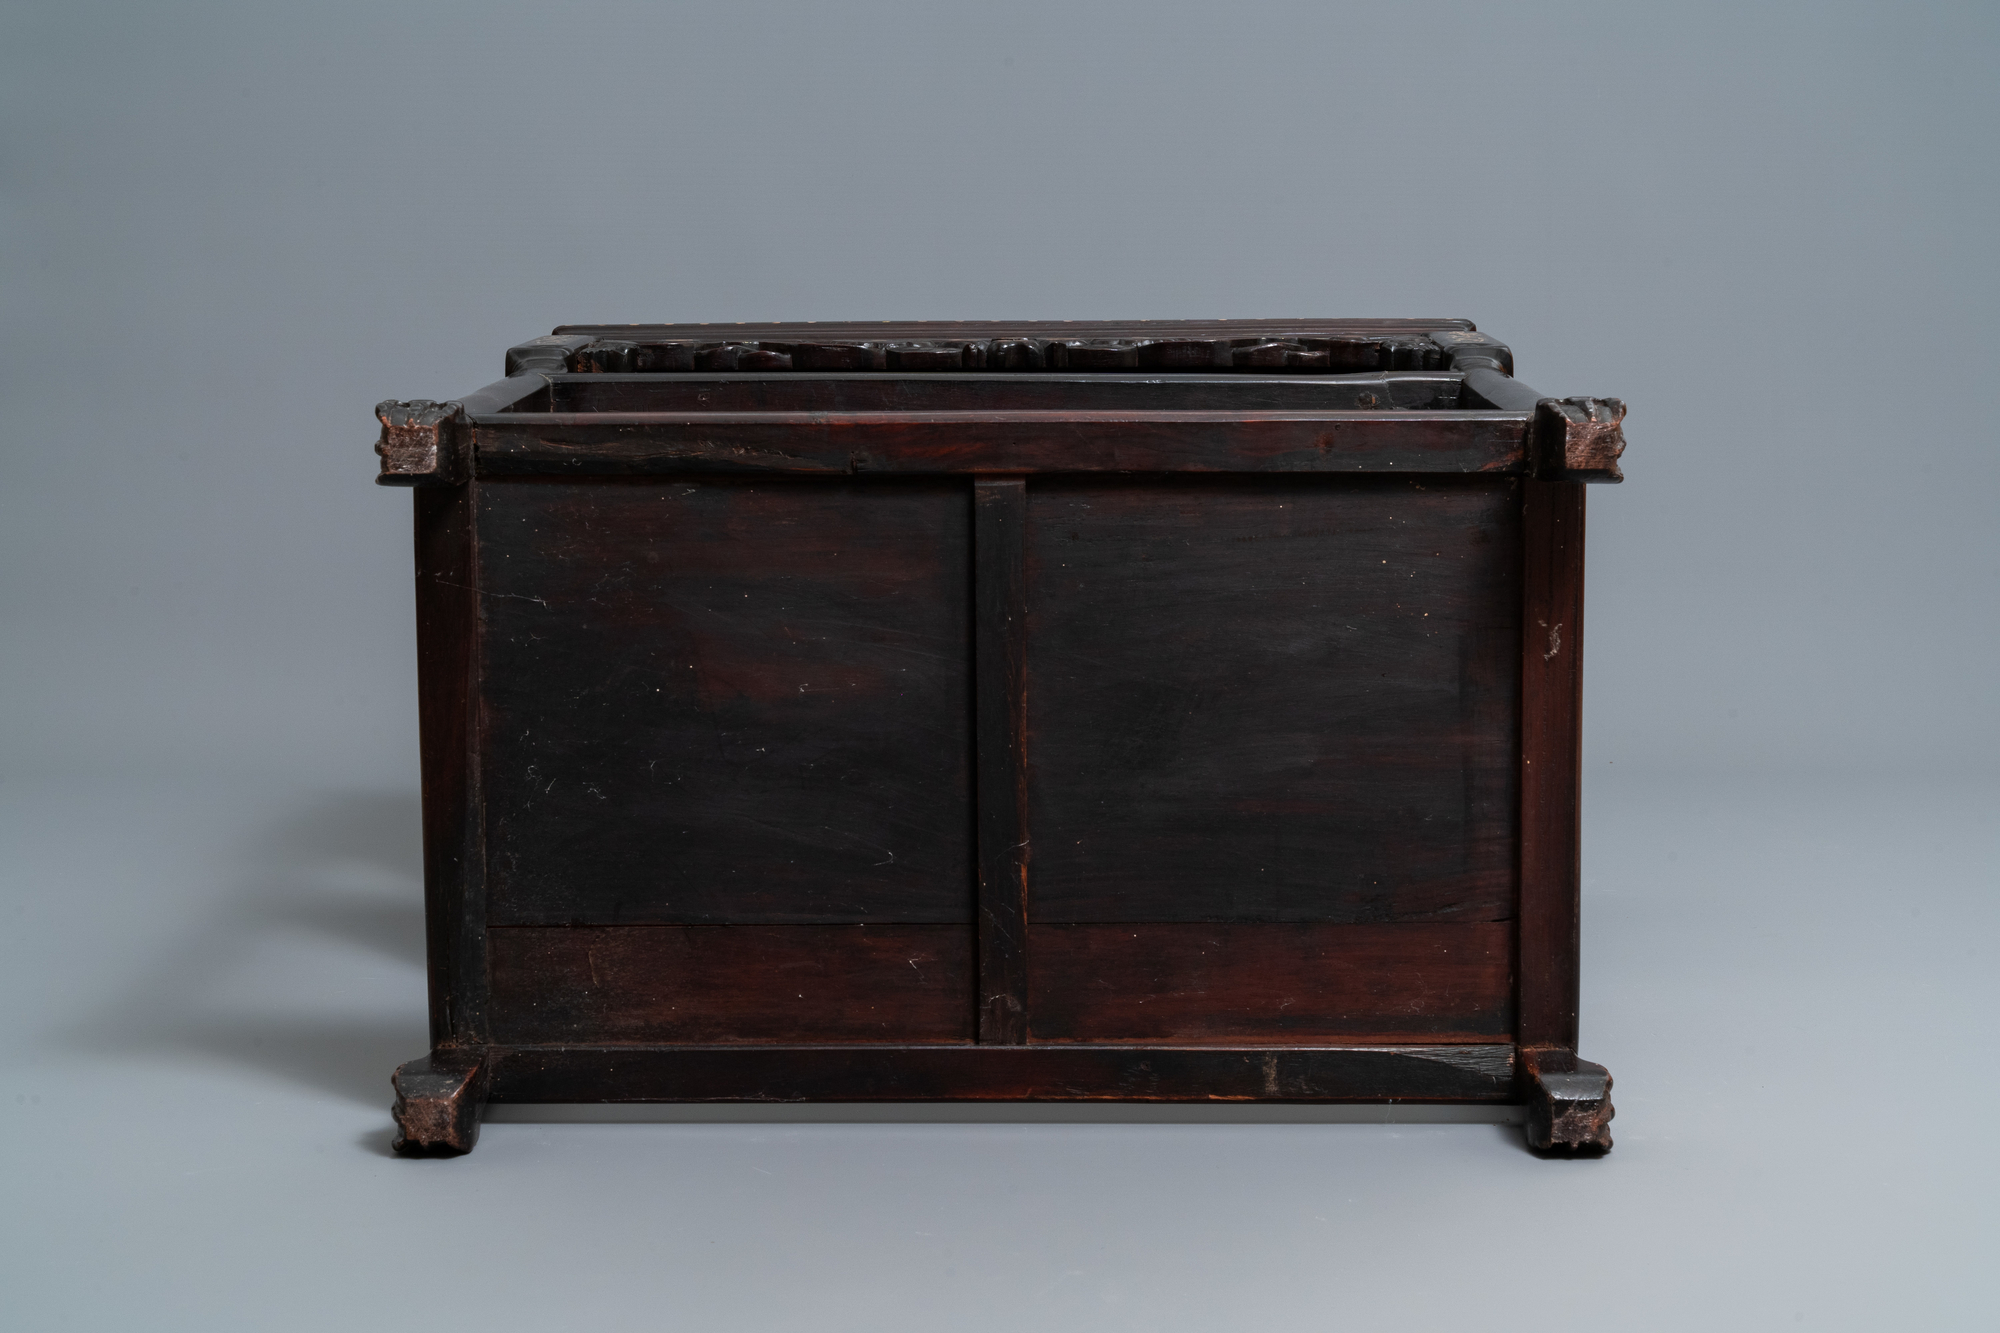 A Chinese mother-of-pearl-inlaid wooden sideboard with marble top, 19th C. - Image 7 of 10